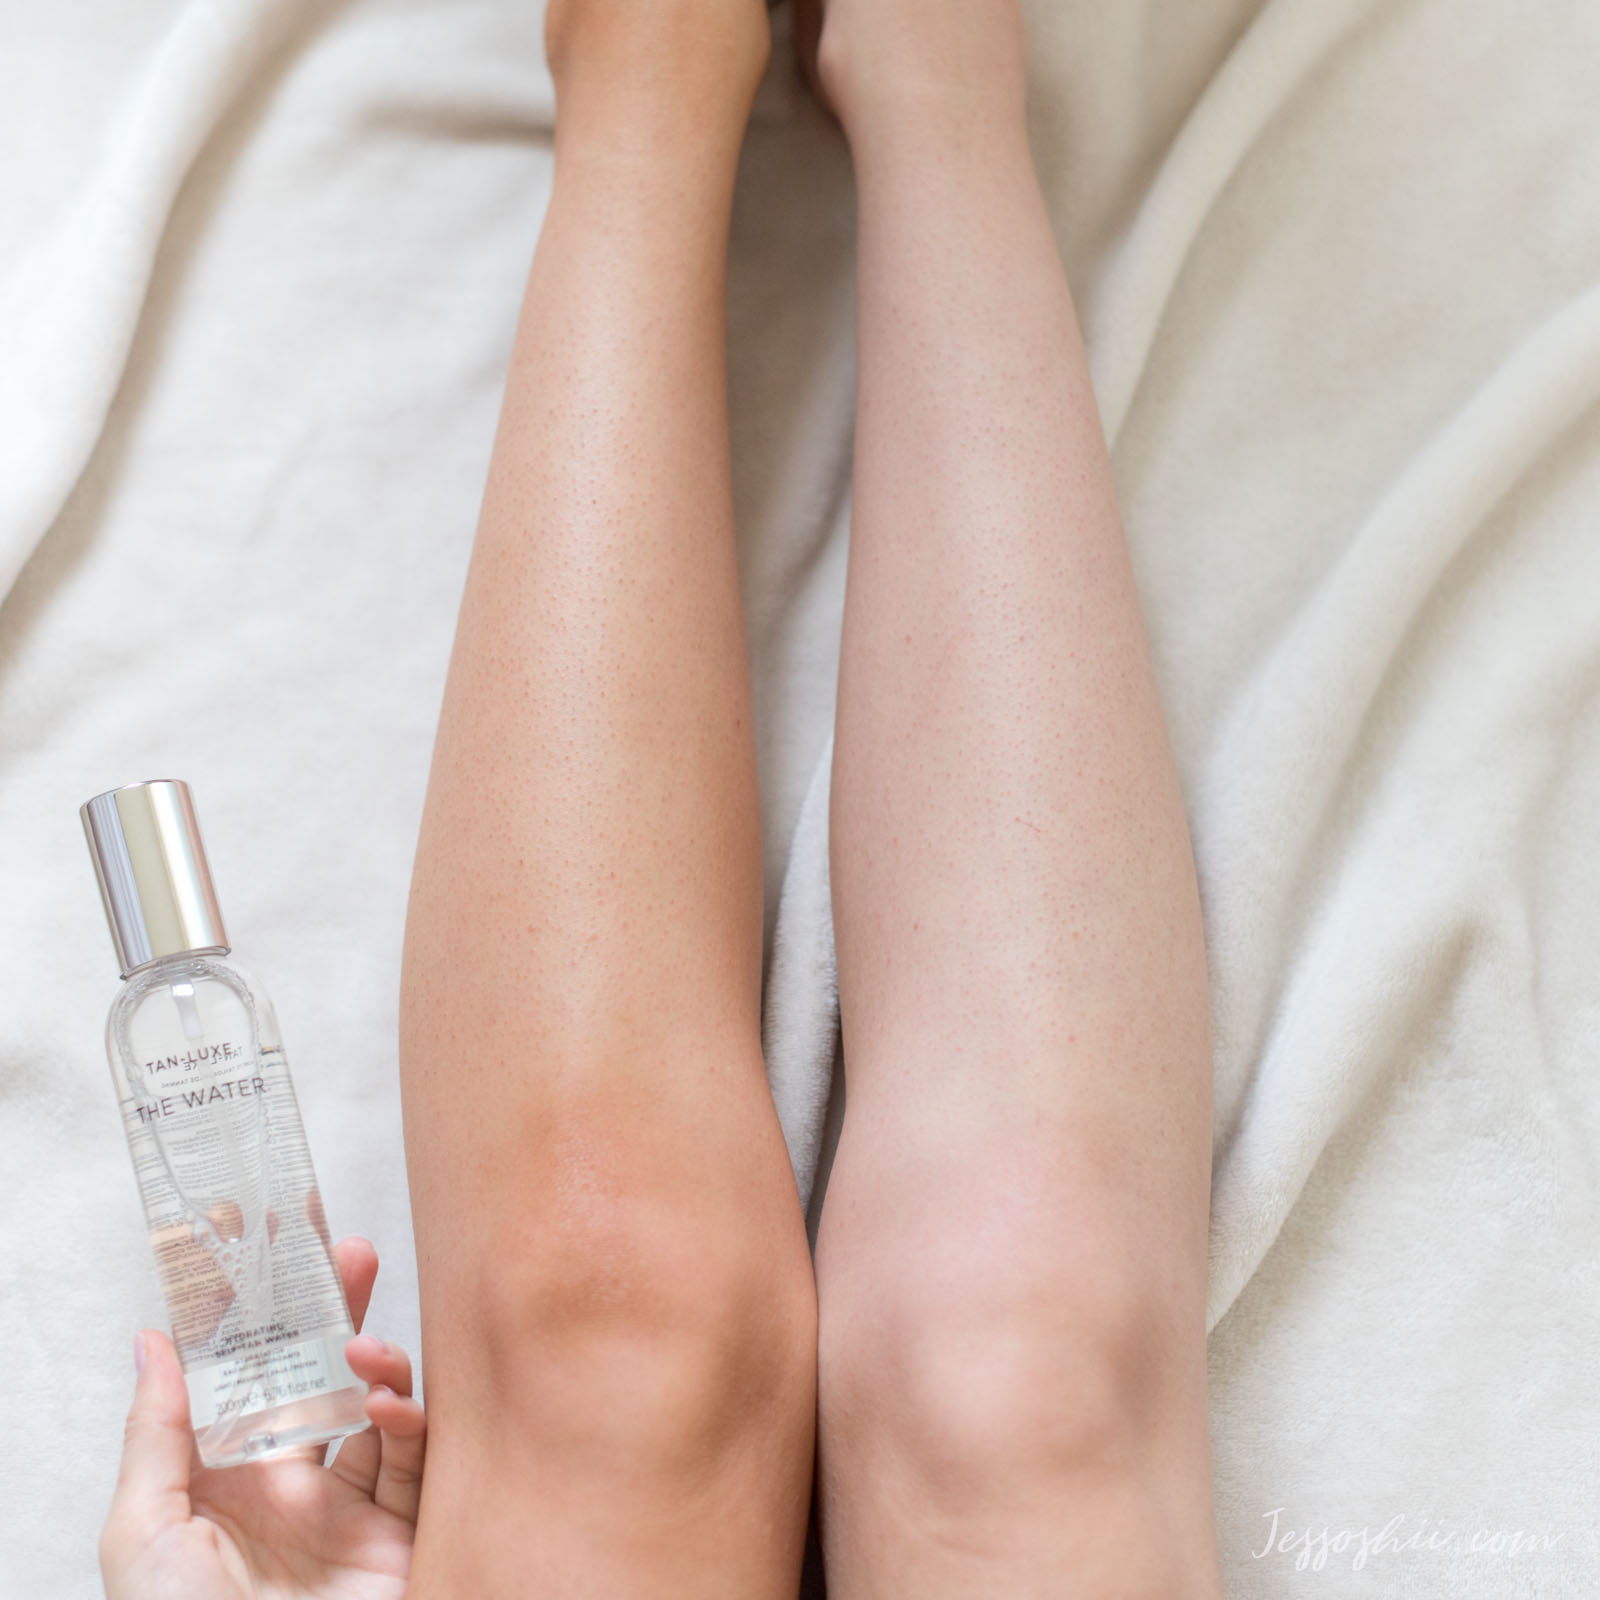 tan luxe the water review, before & after 02